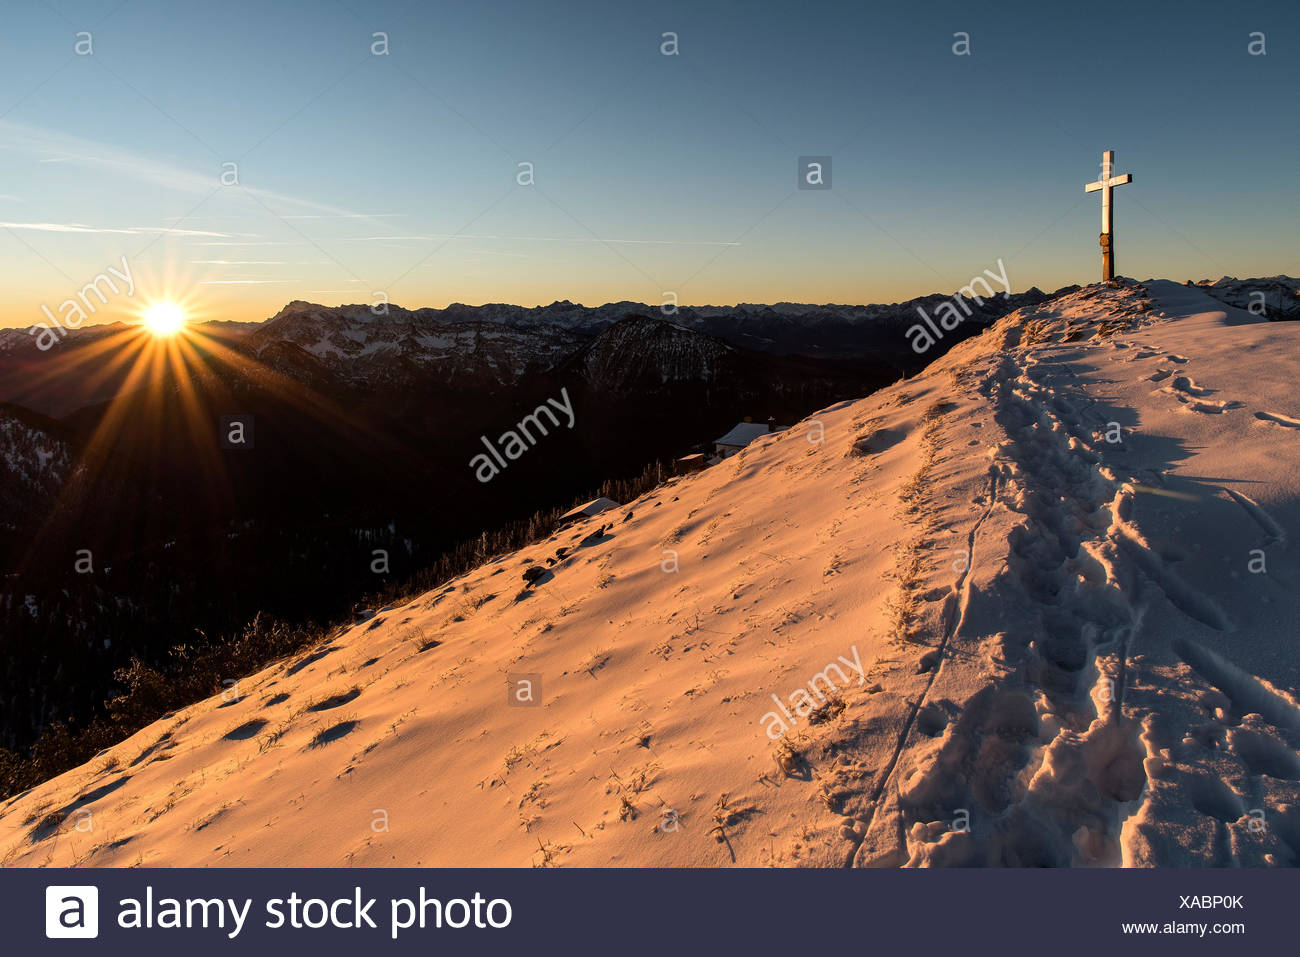 Evening sun at the summit of the Heimgarten, summit cross shines in the snow of the foreground footprints. - Stock Image